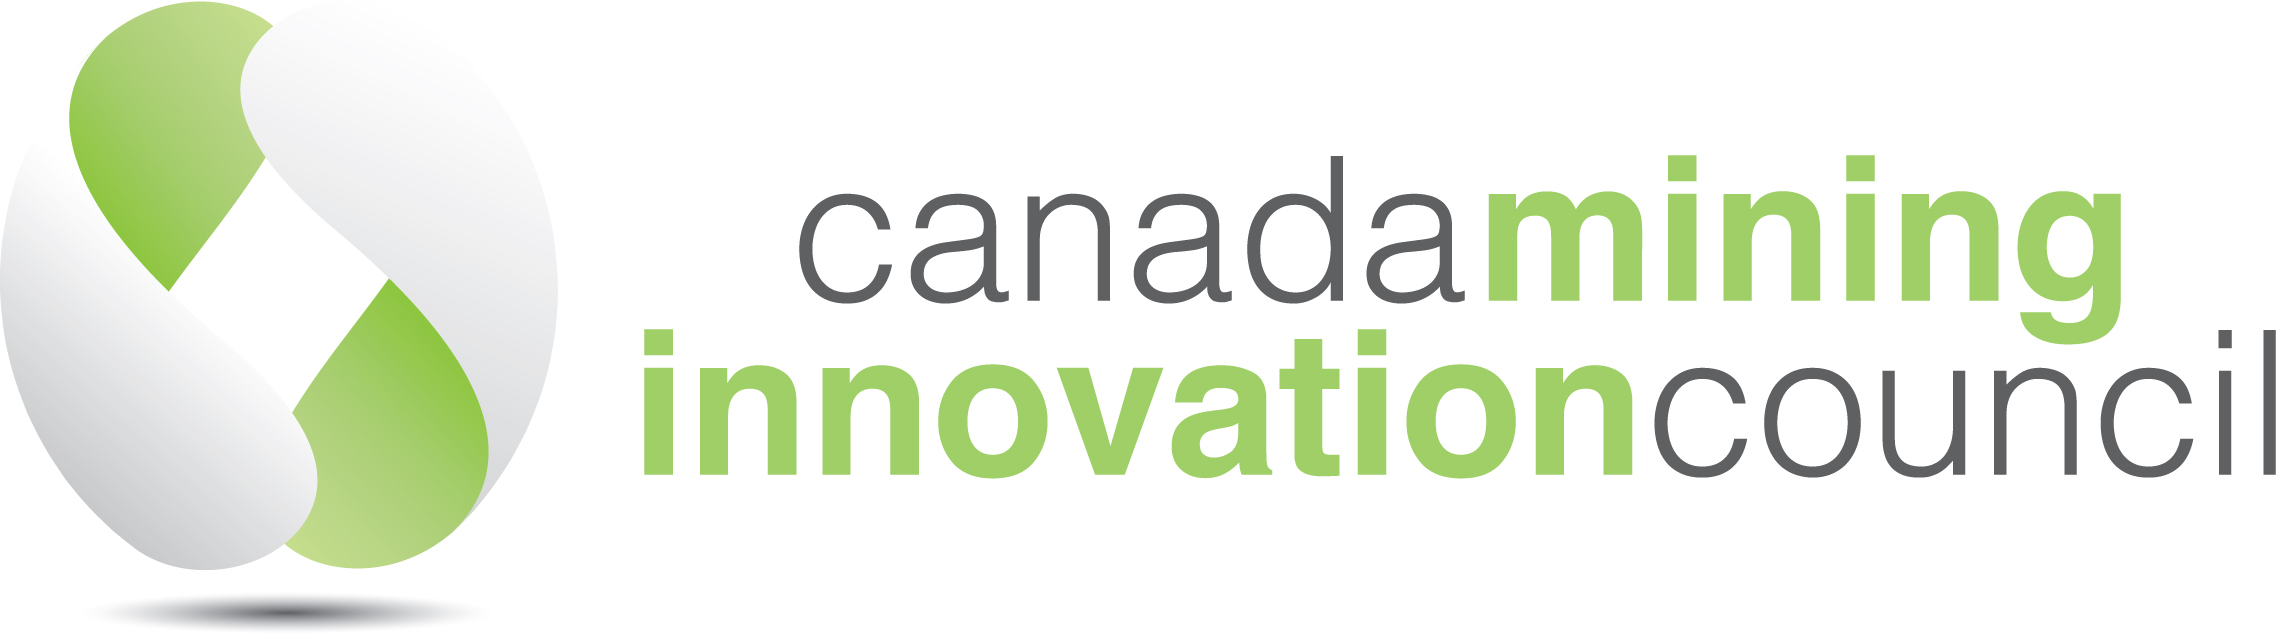 Canada Mining Innovation Council